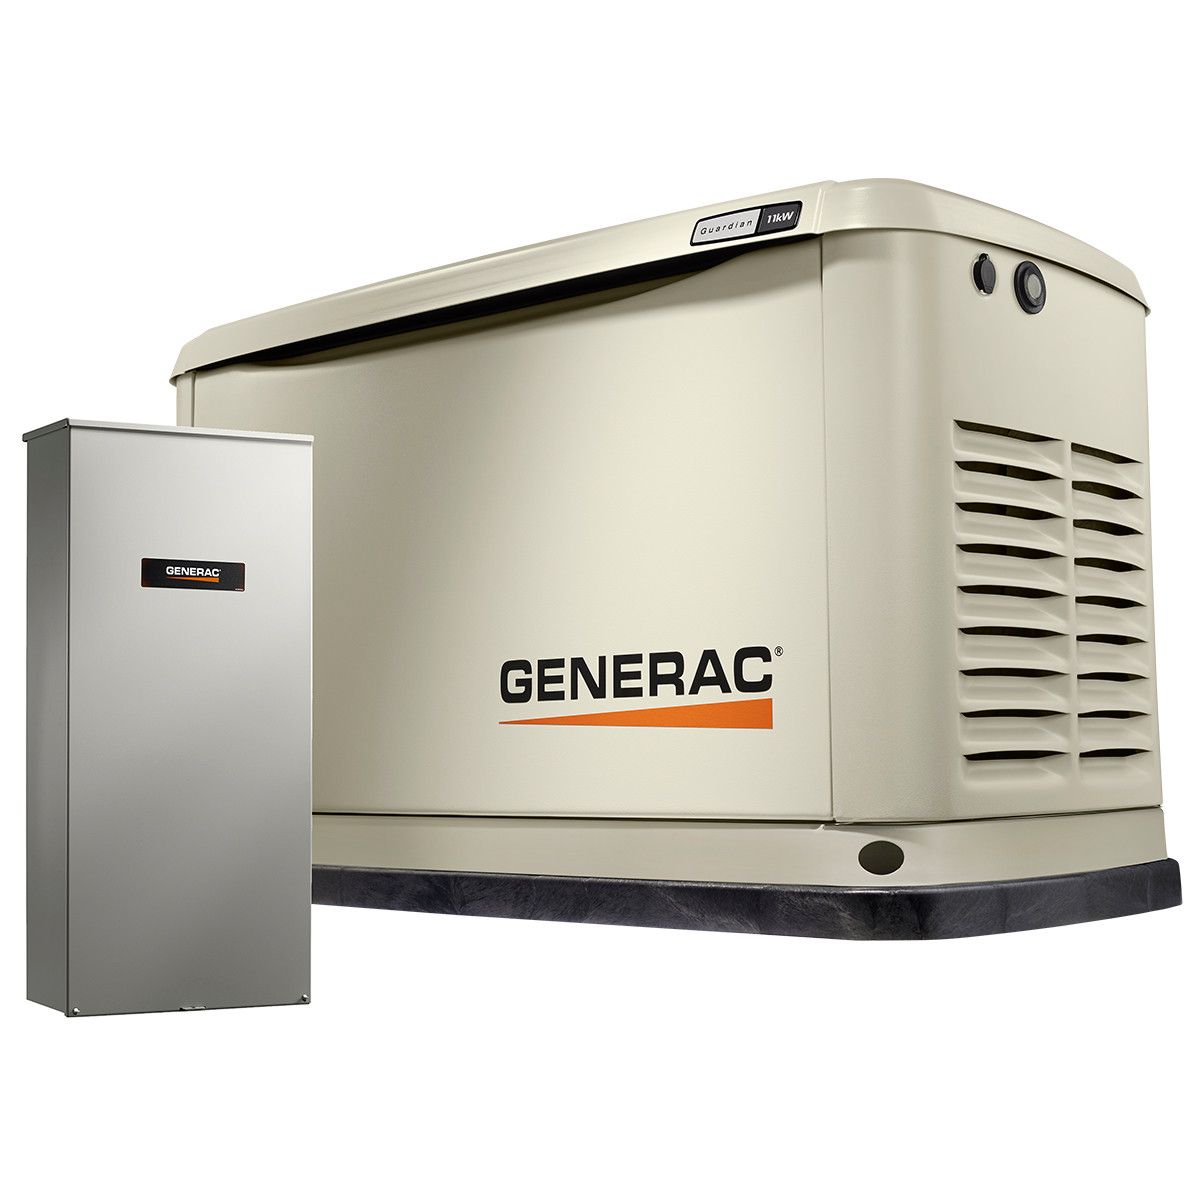 hight resolution of generac guardian 7032 11kw generator with wi fi 100a 16 circuit transfer switch